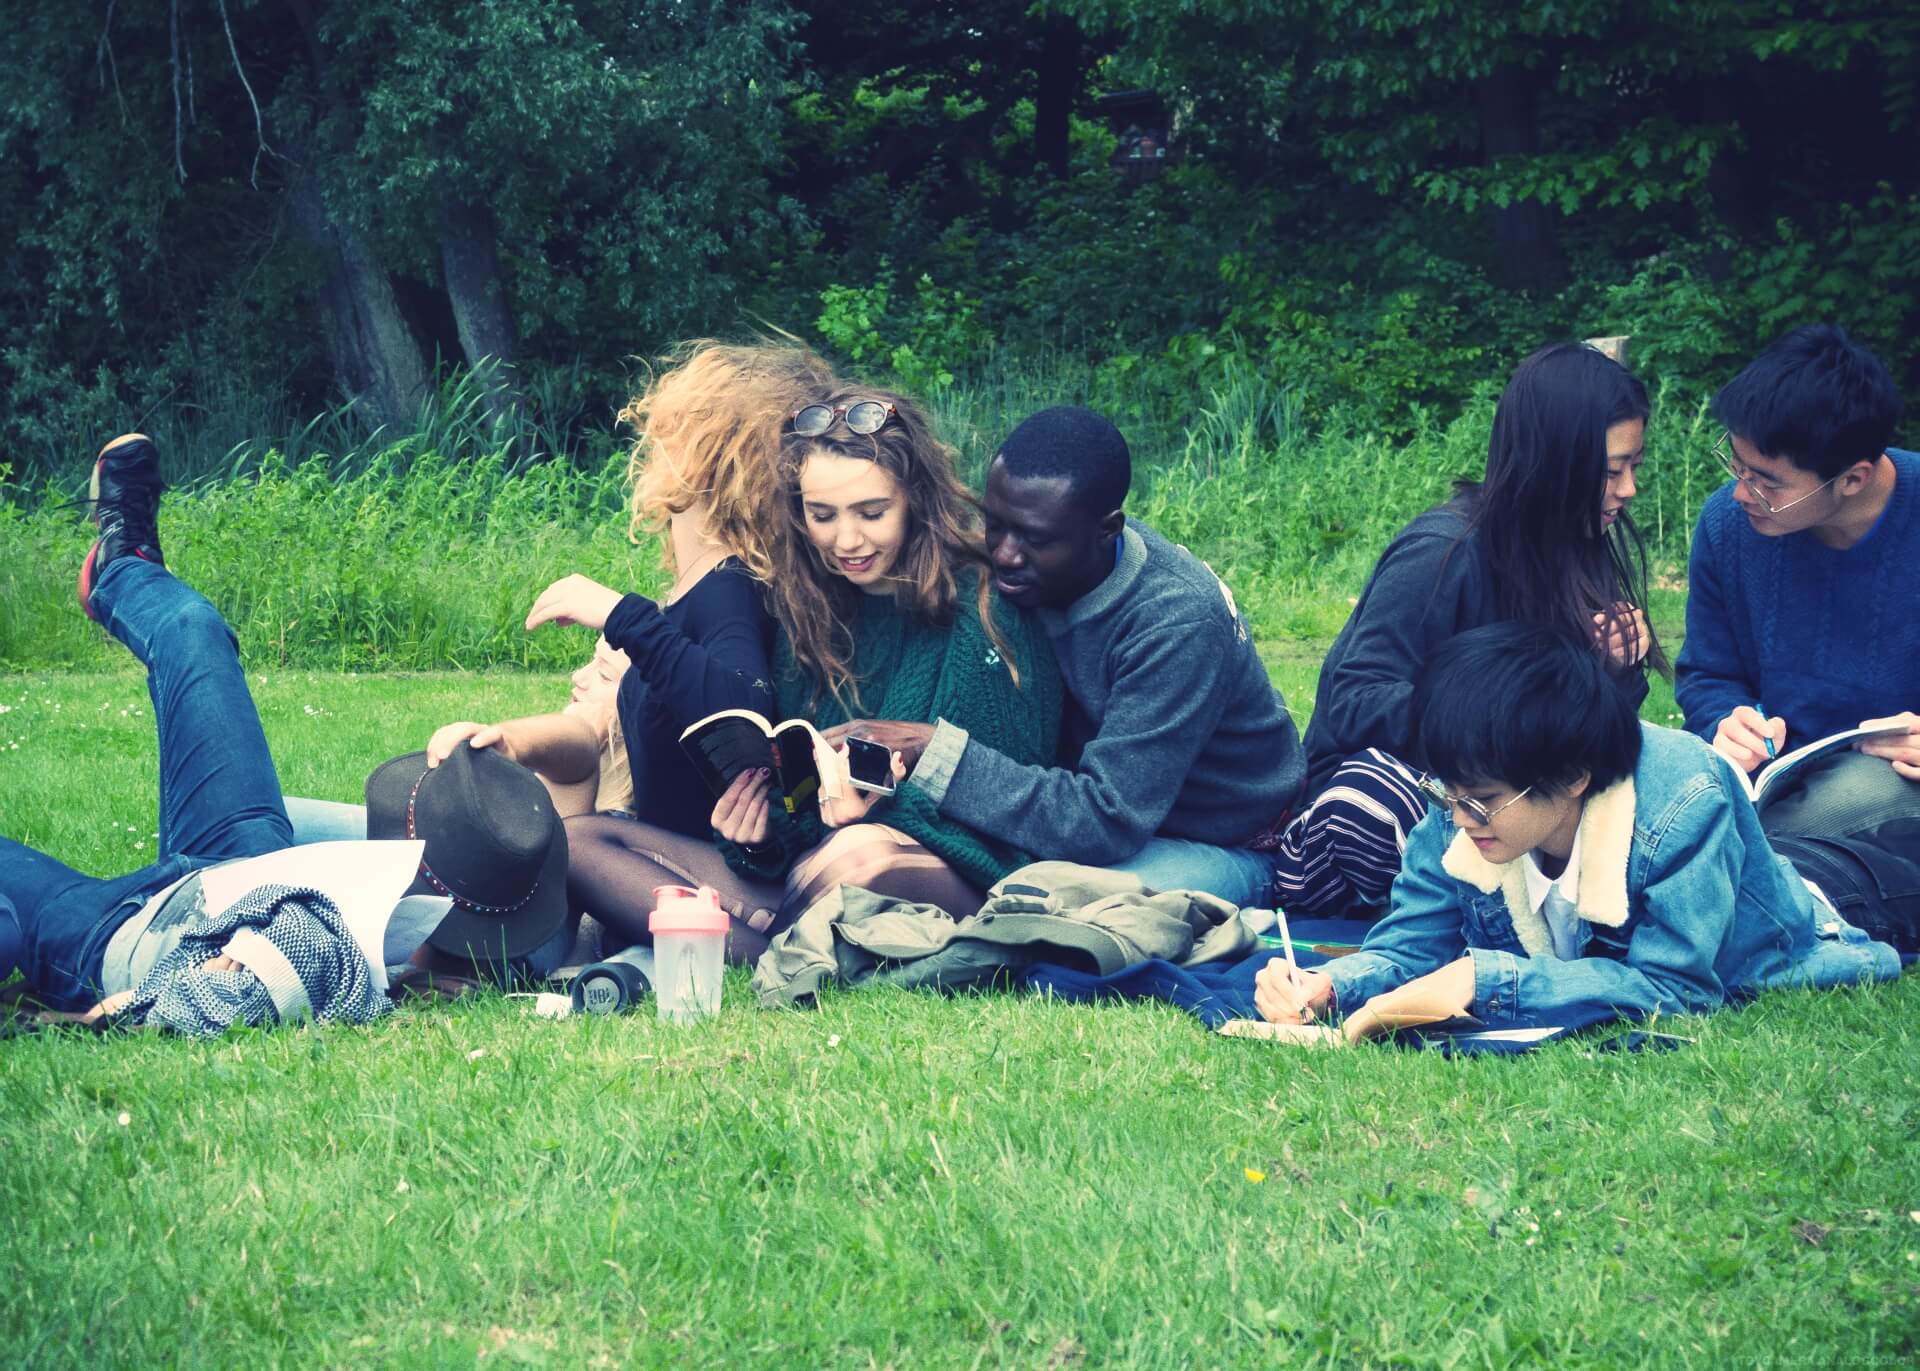 IPC - folk high school dates and prices at International People's College in Denmark